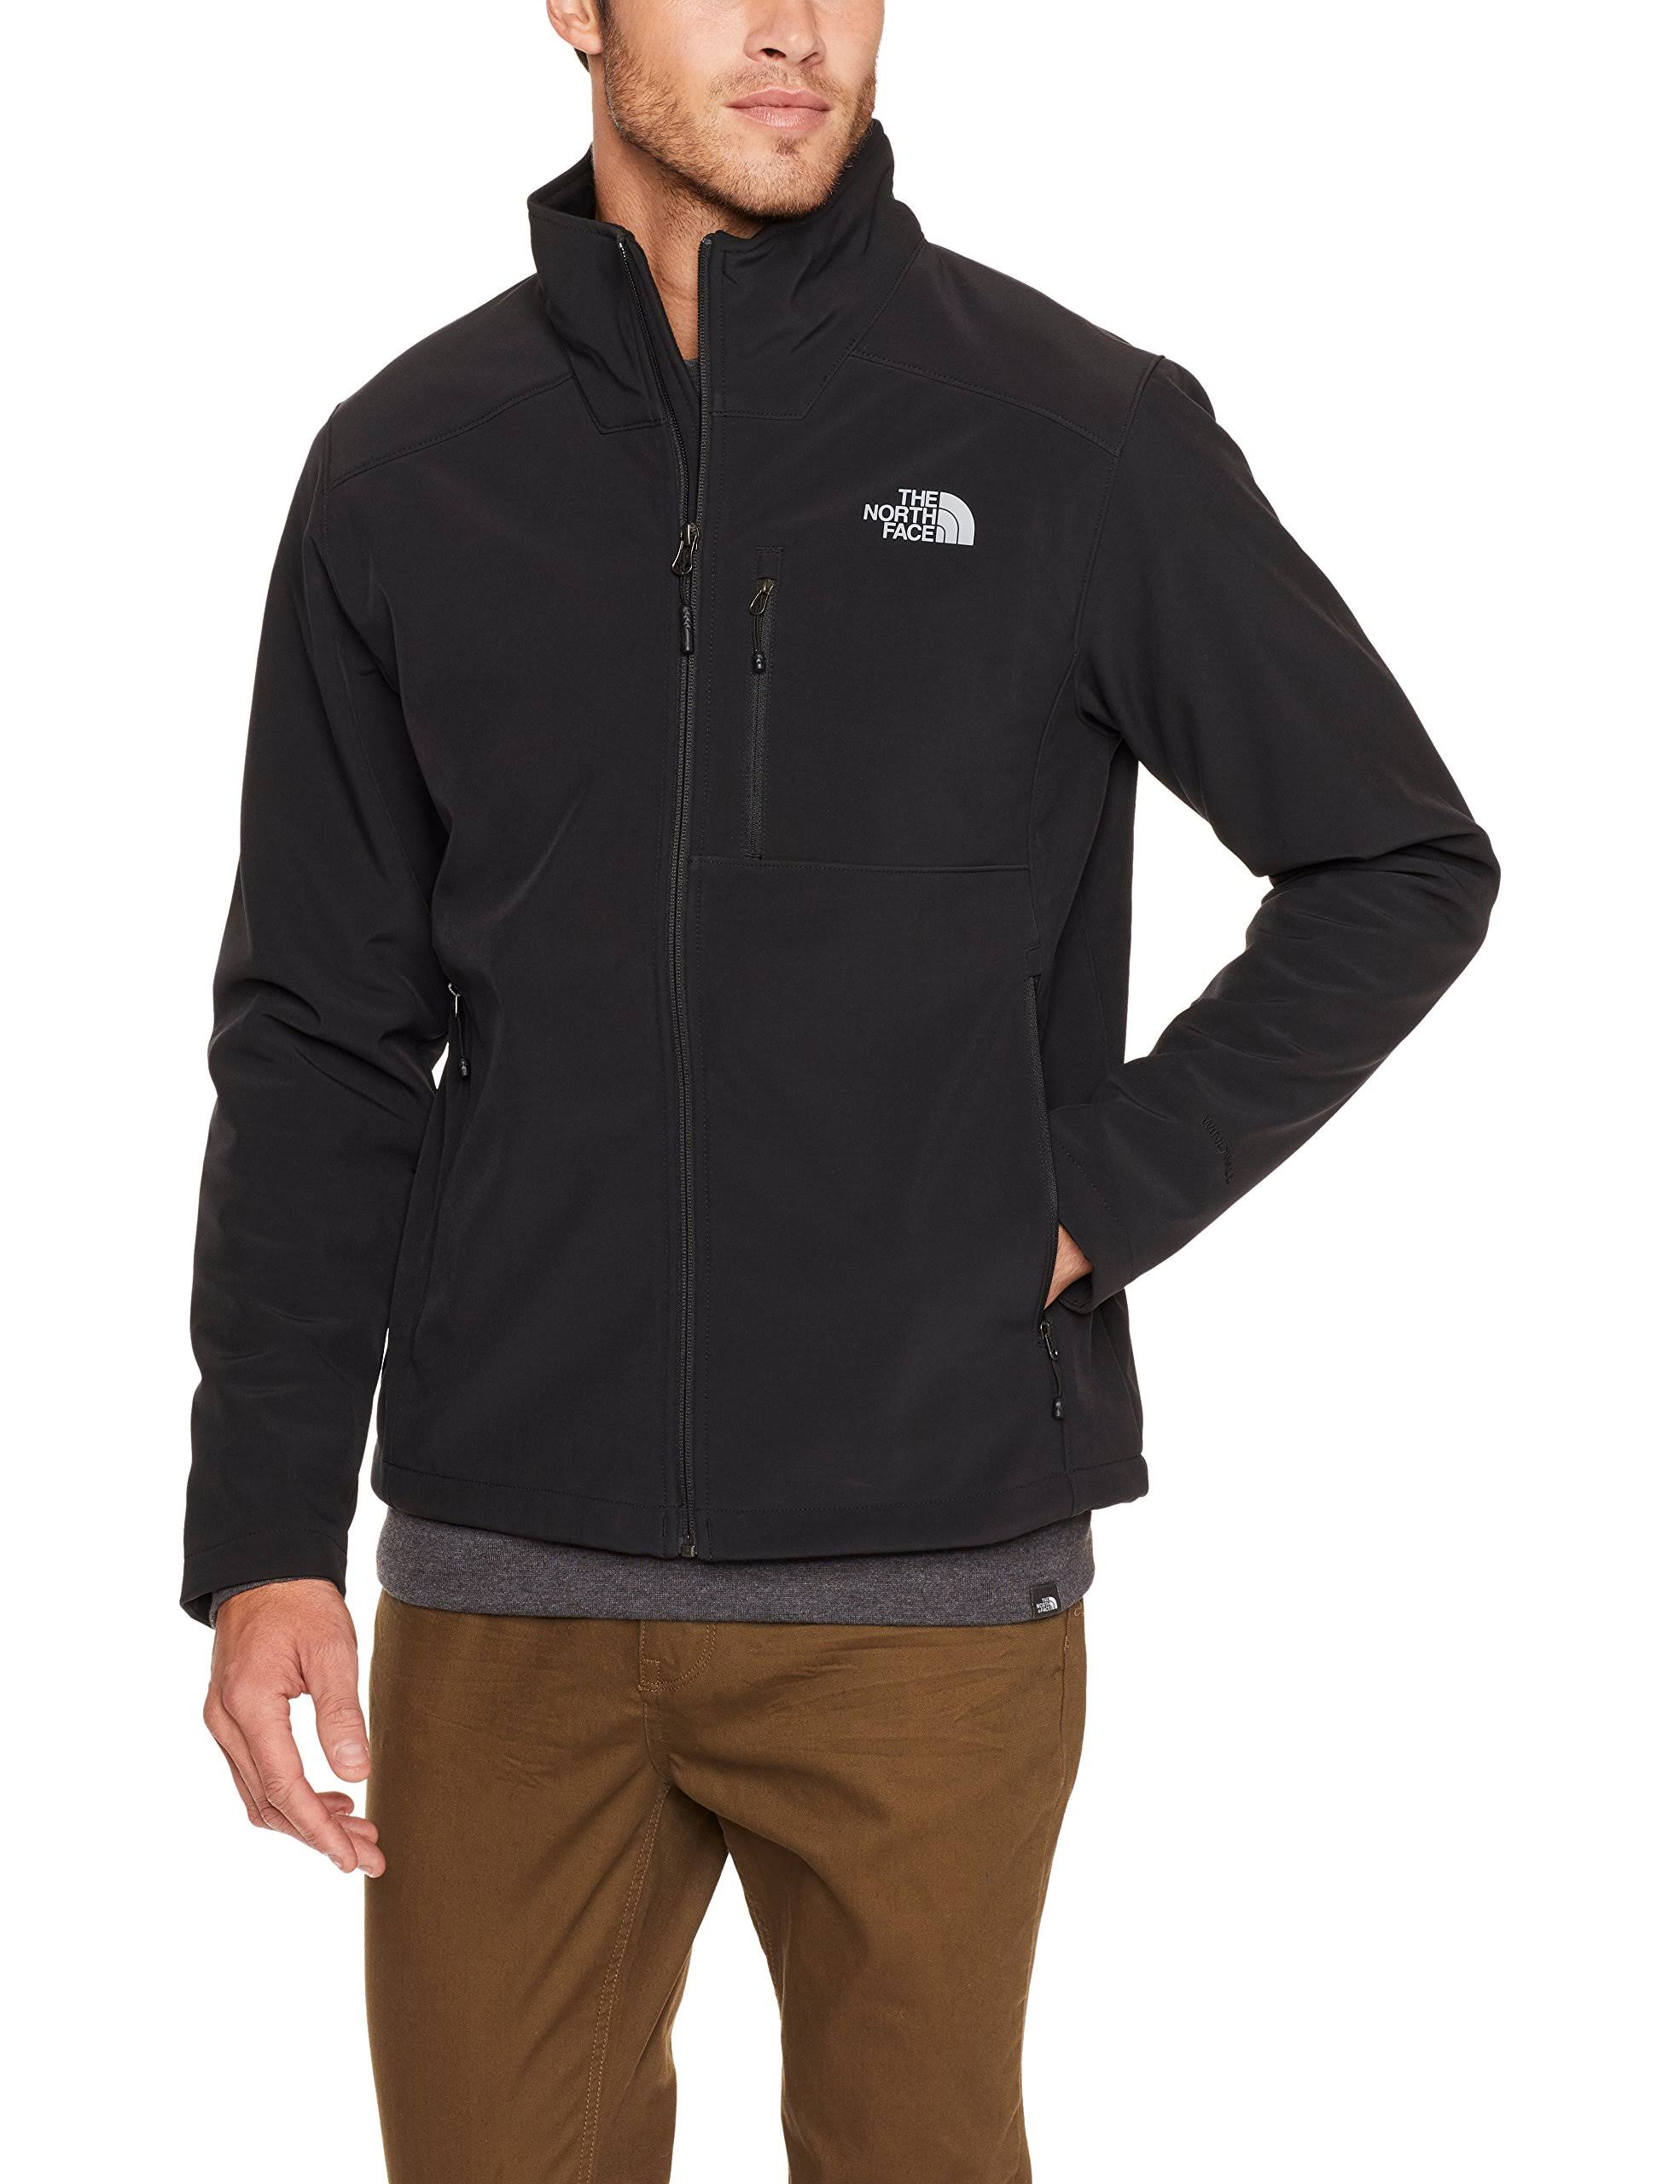 tnf 2 Hombre Face Negro Bionic Para The North Apex Chaqueta v1qnII8O